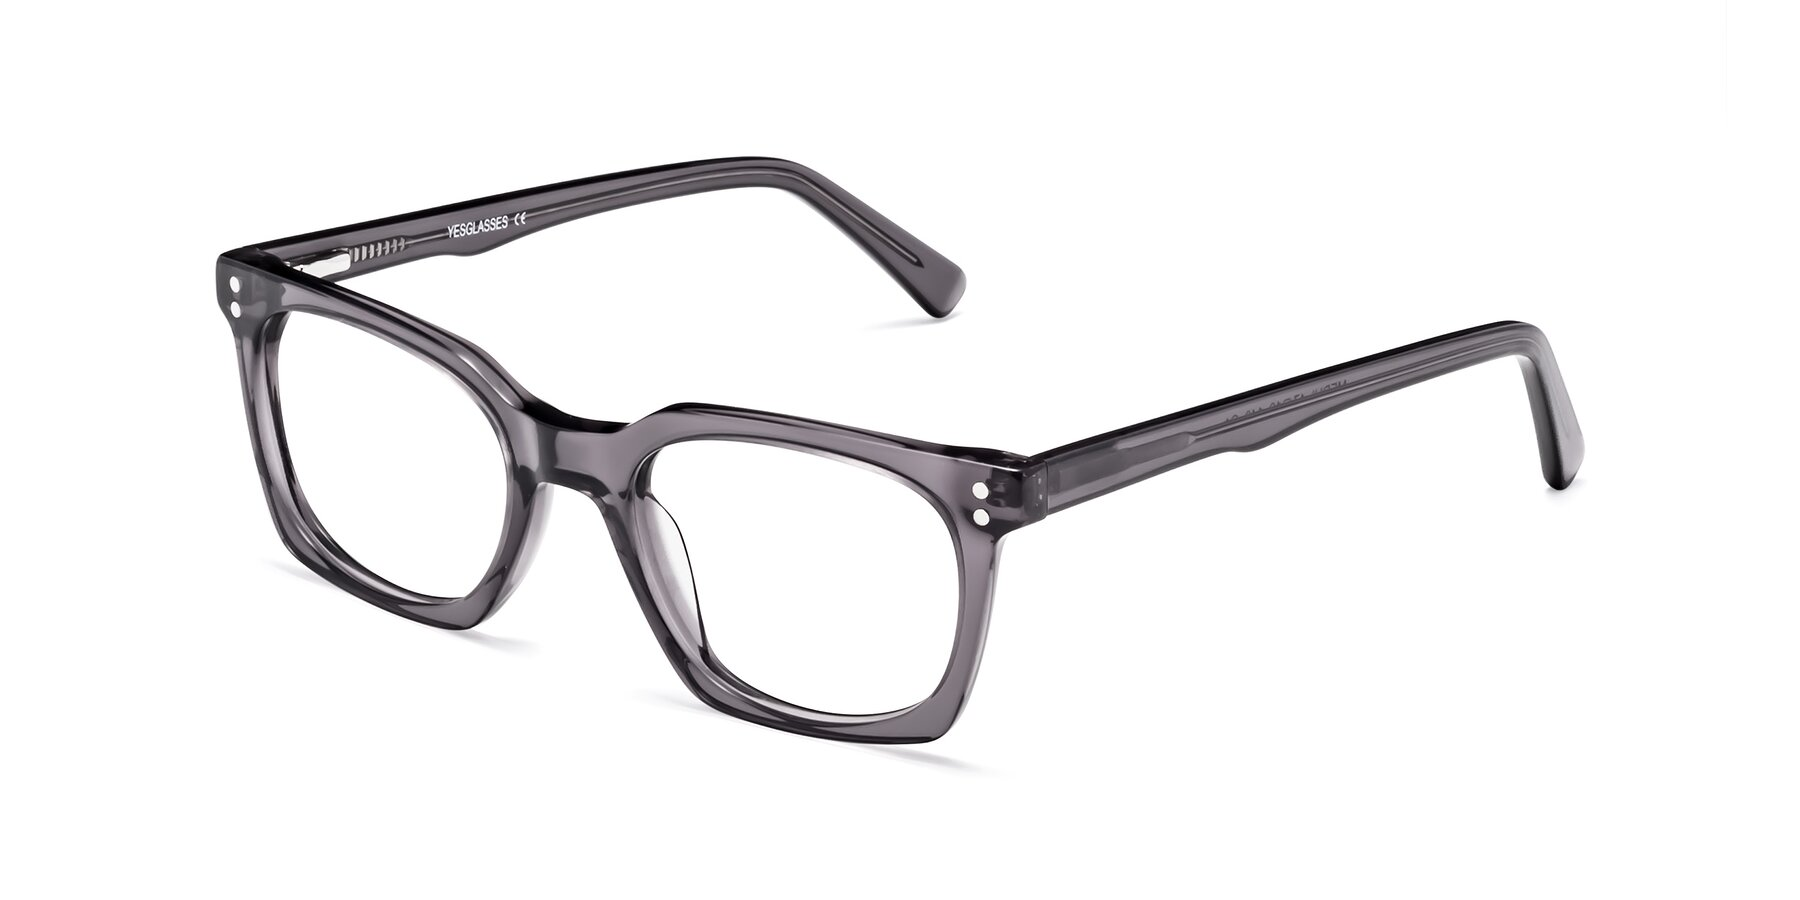 Angle of 17355 in Transparent Gray with Clear Eyeglass Lenses